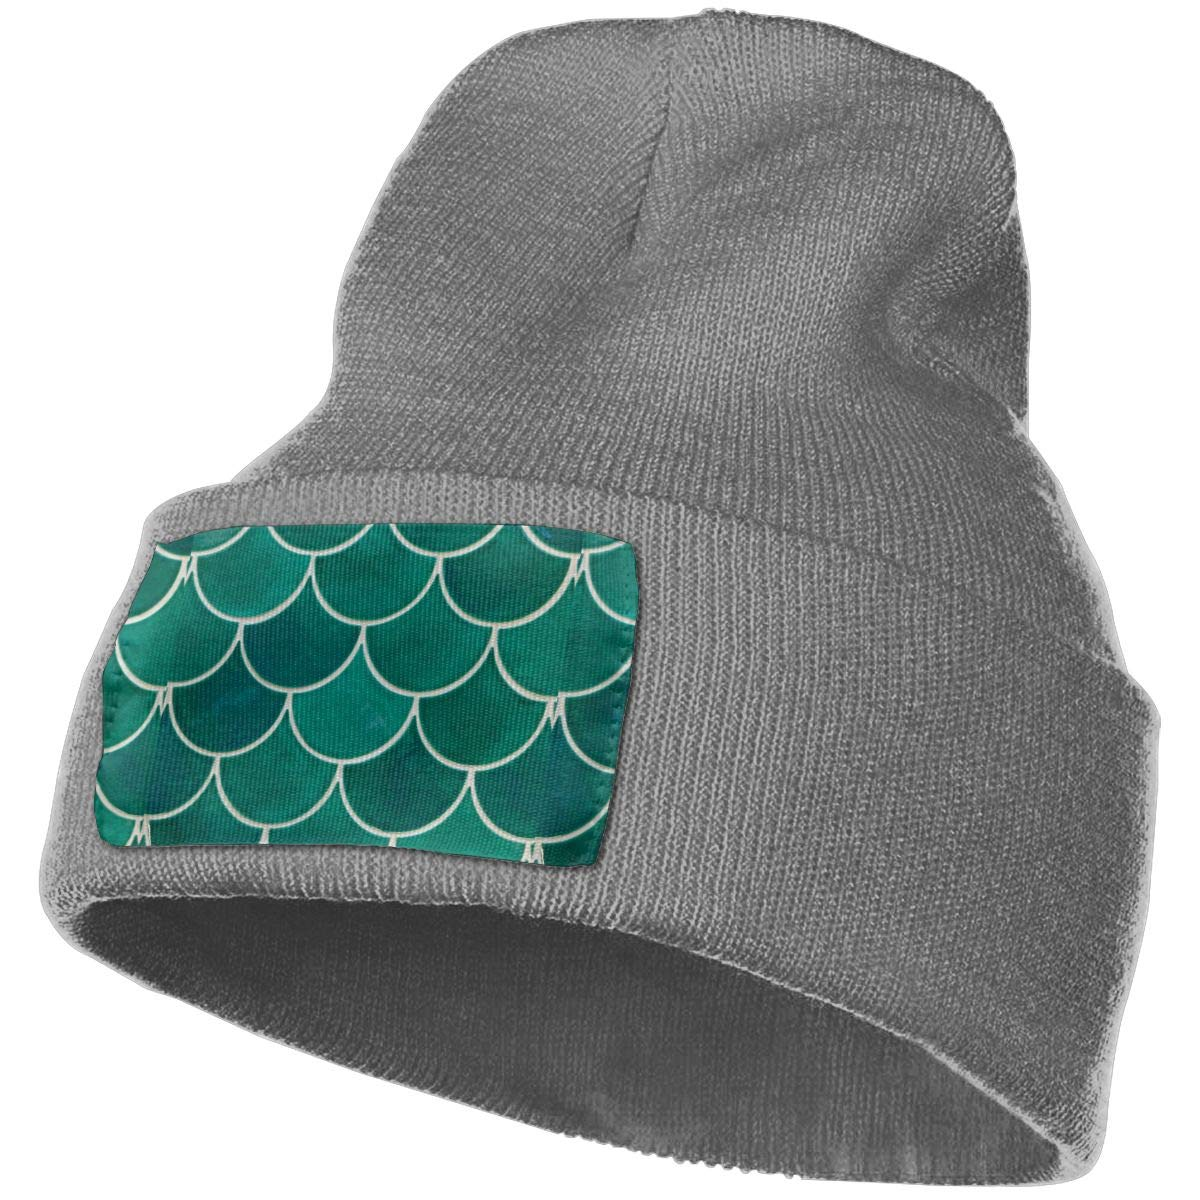 WHOO93@Y Mens and Womens 100/% Acrylic Knitting Hat Cap Fish Scales Warm Skull Beanie